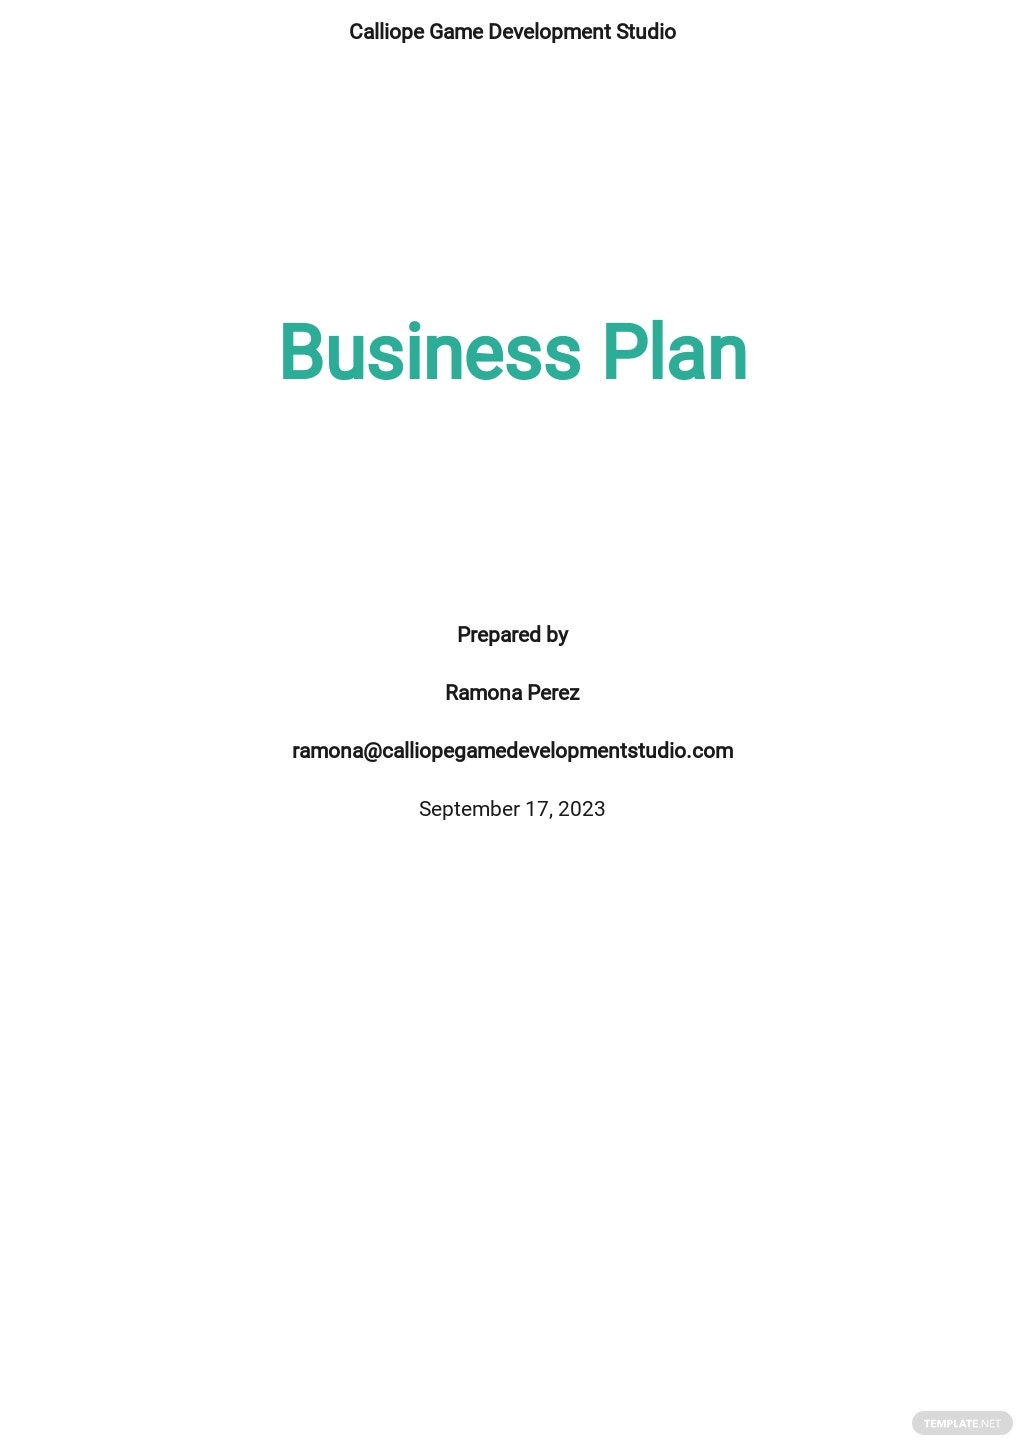 Game / Game Studio Business Plan Template